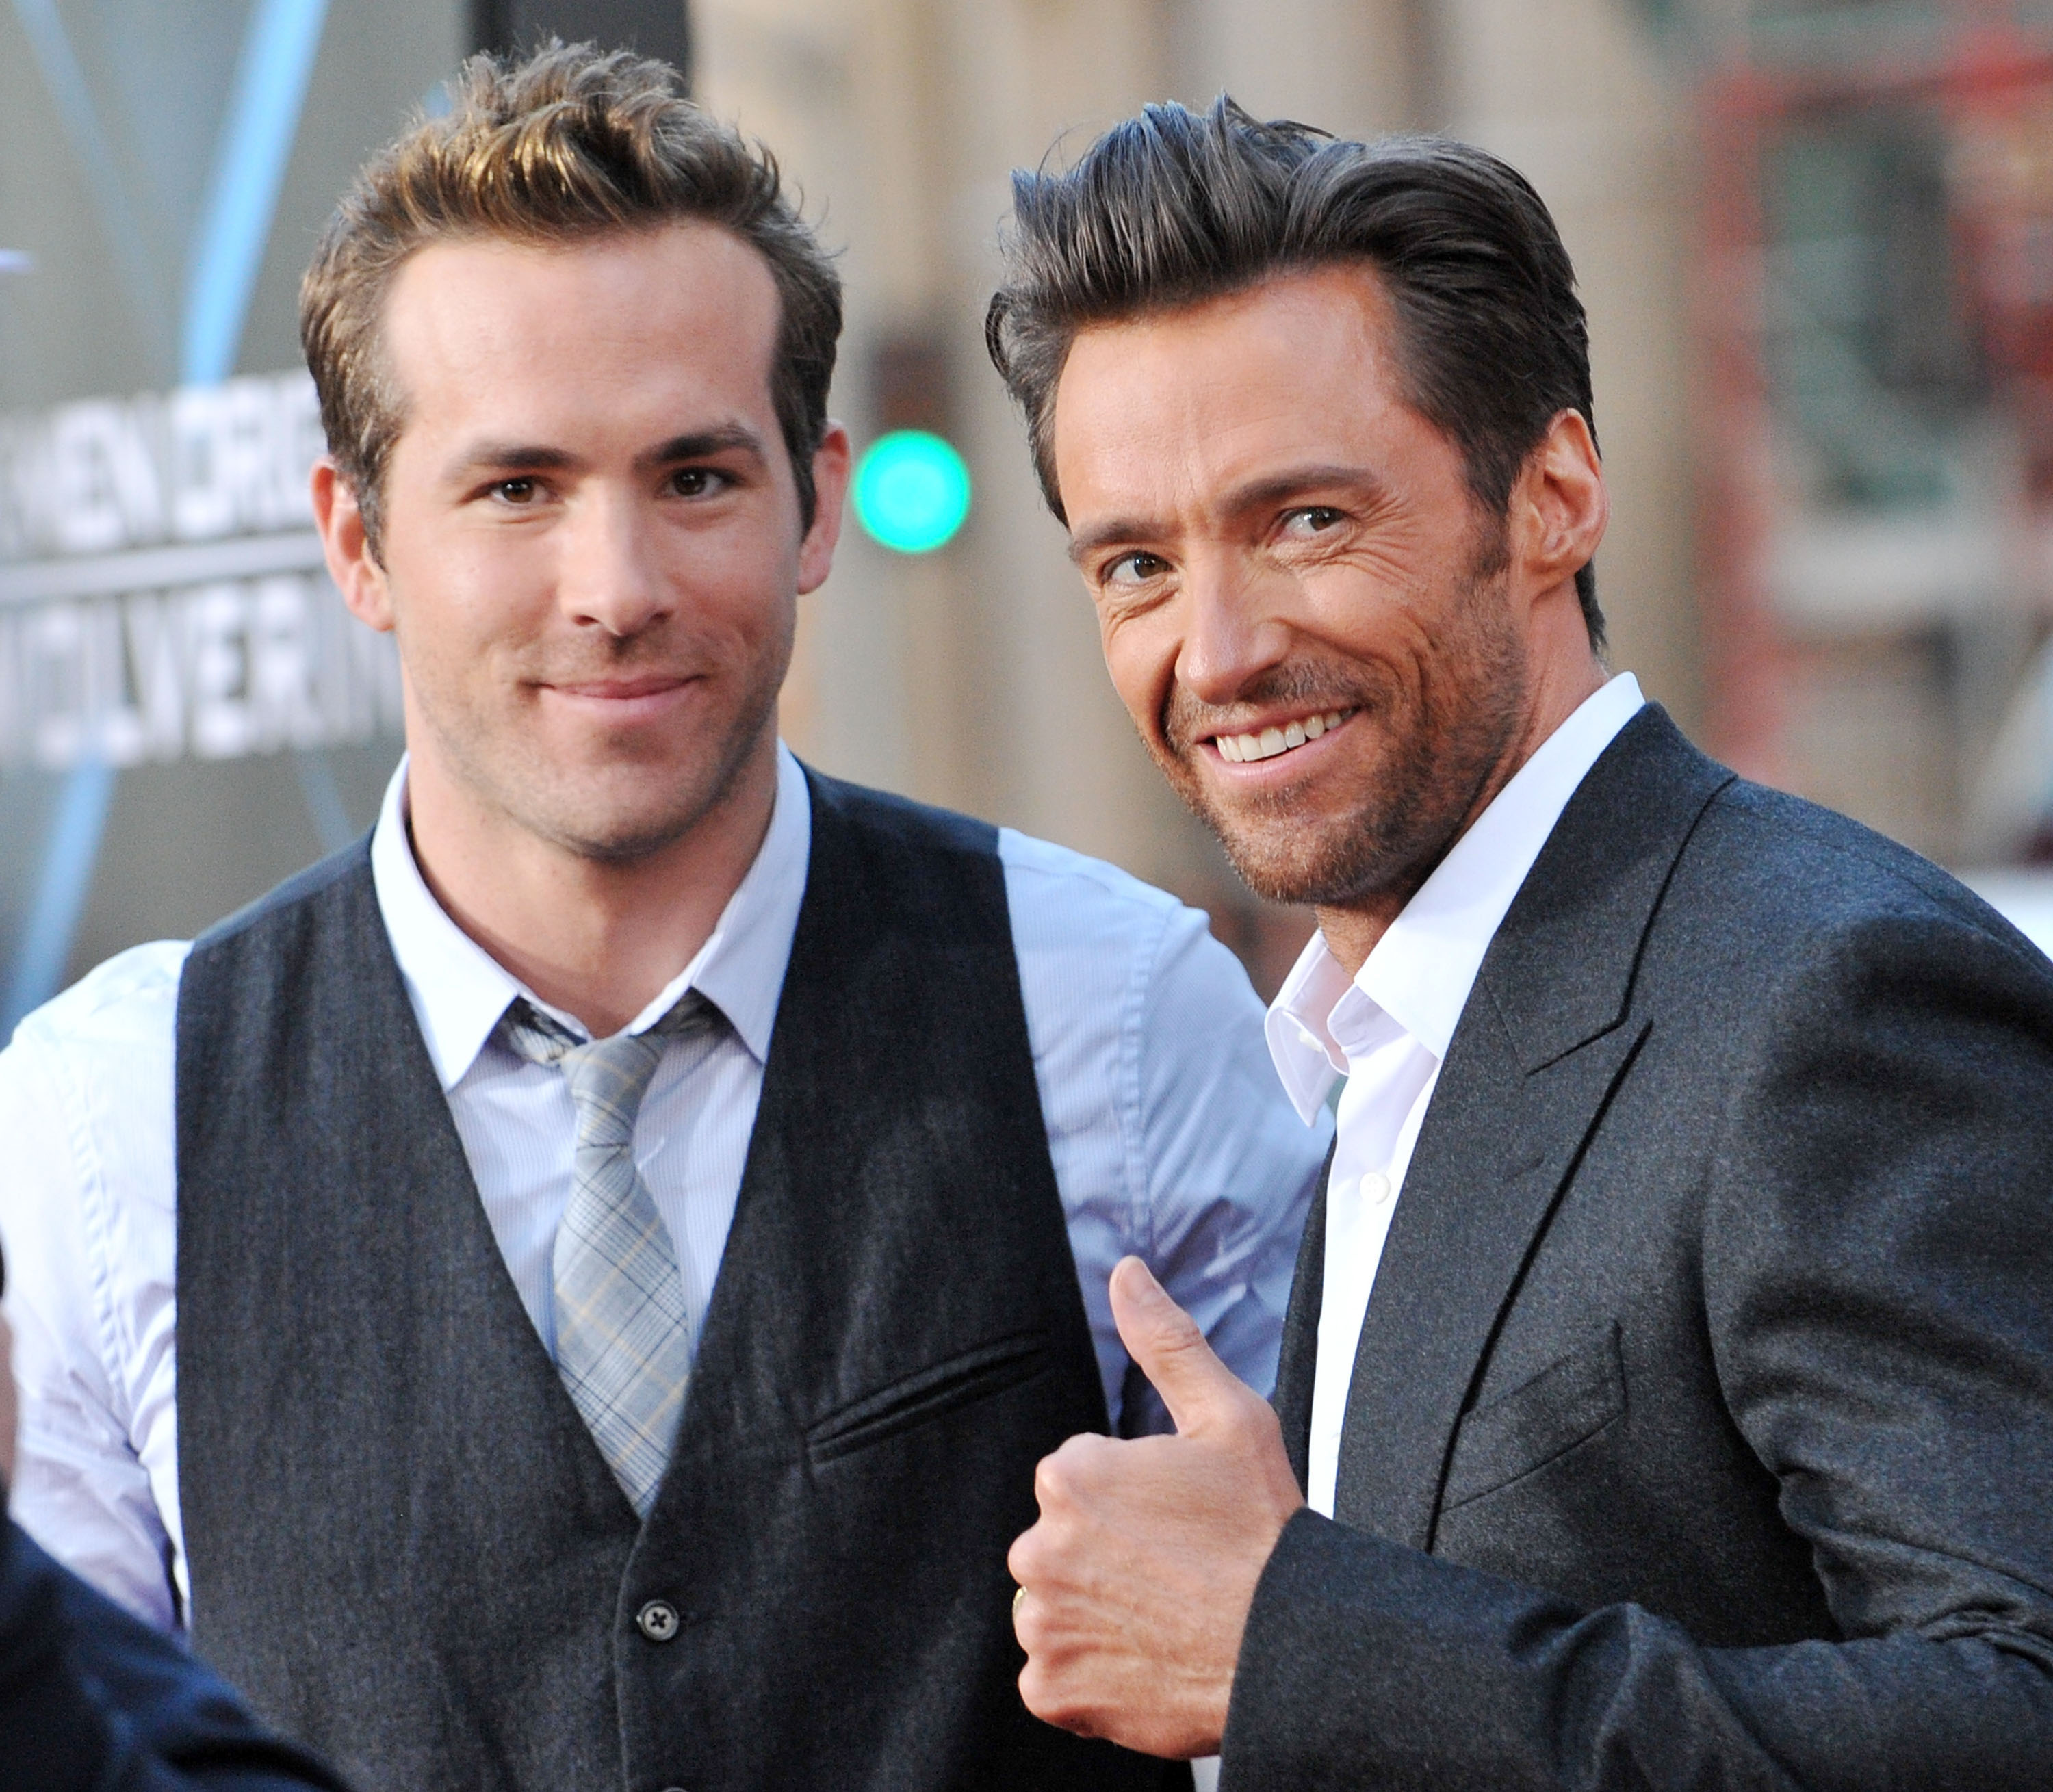 Ryan Reynolds and Hugh Jackman have the banter thing nailed in hilarious Twitter exchange